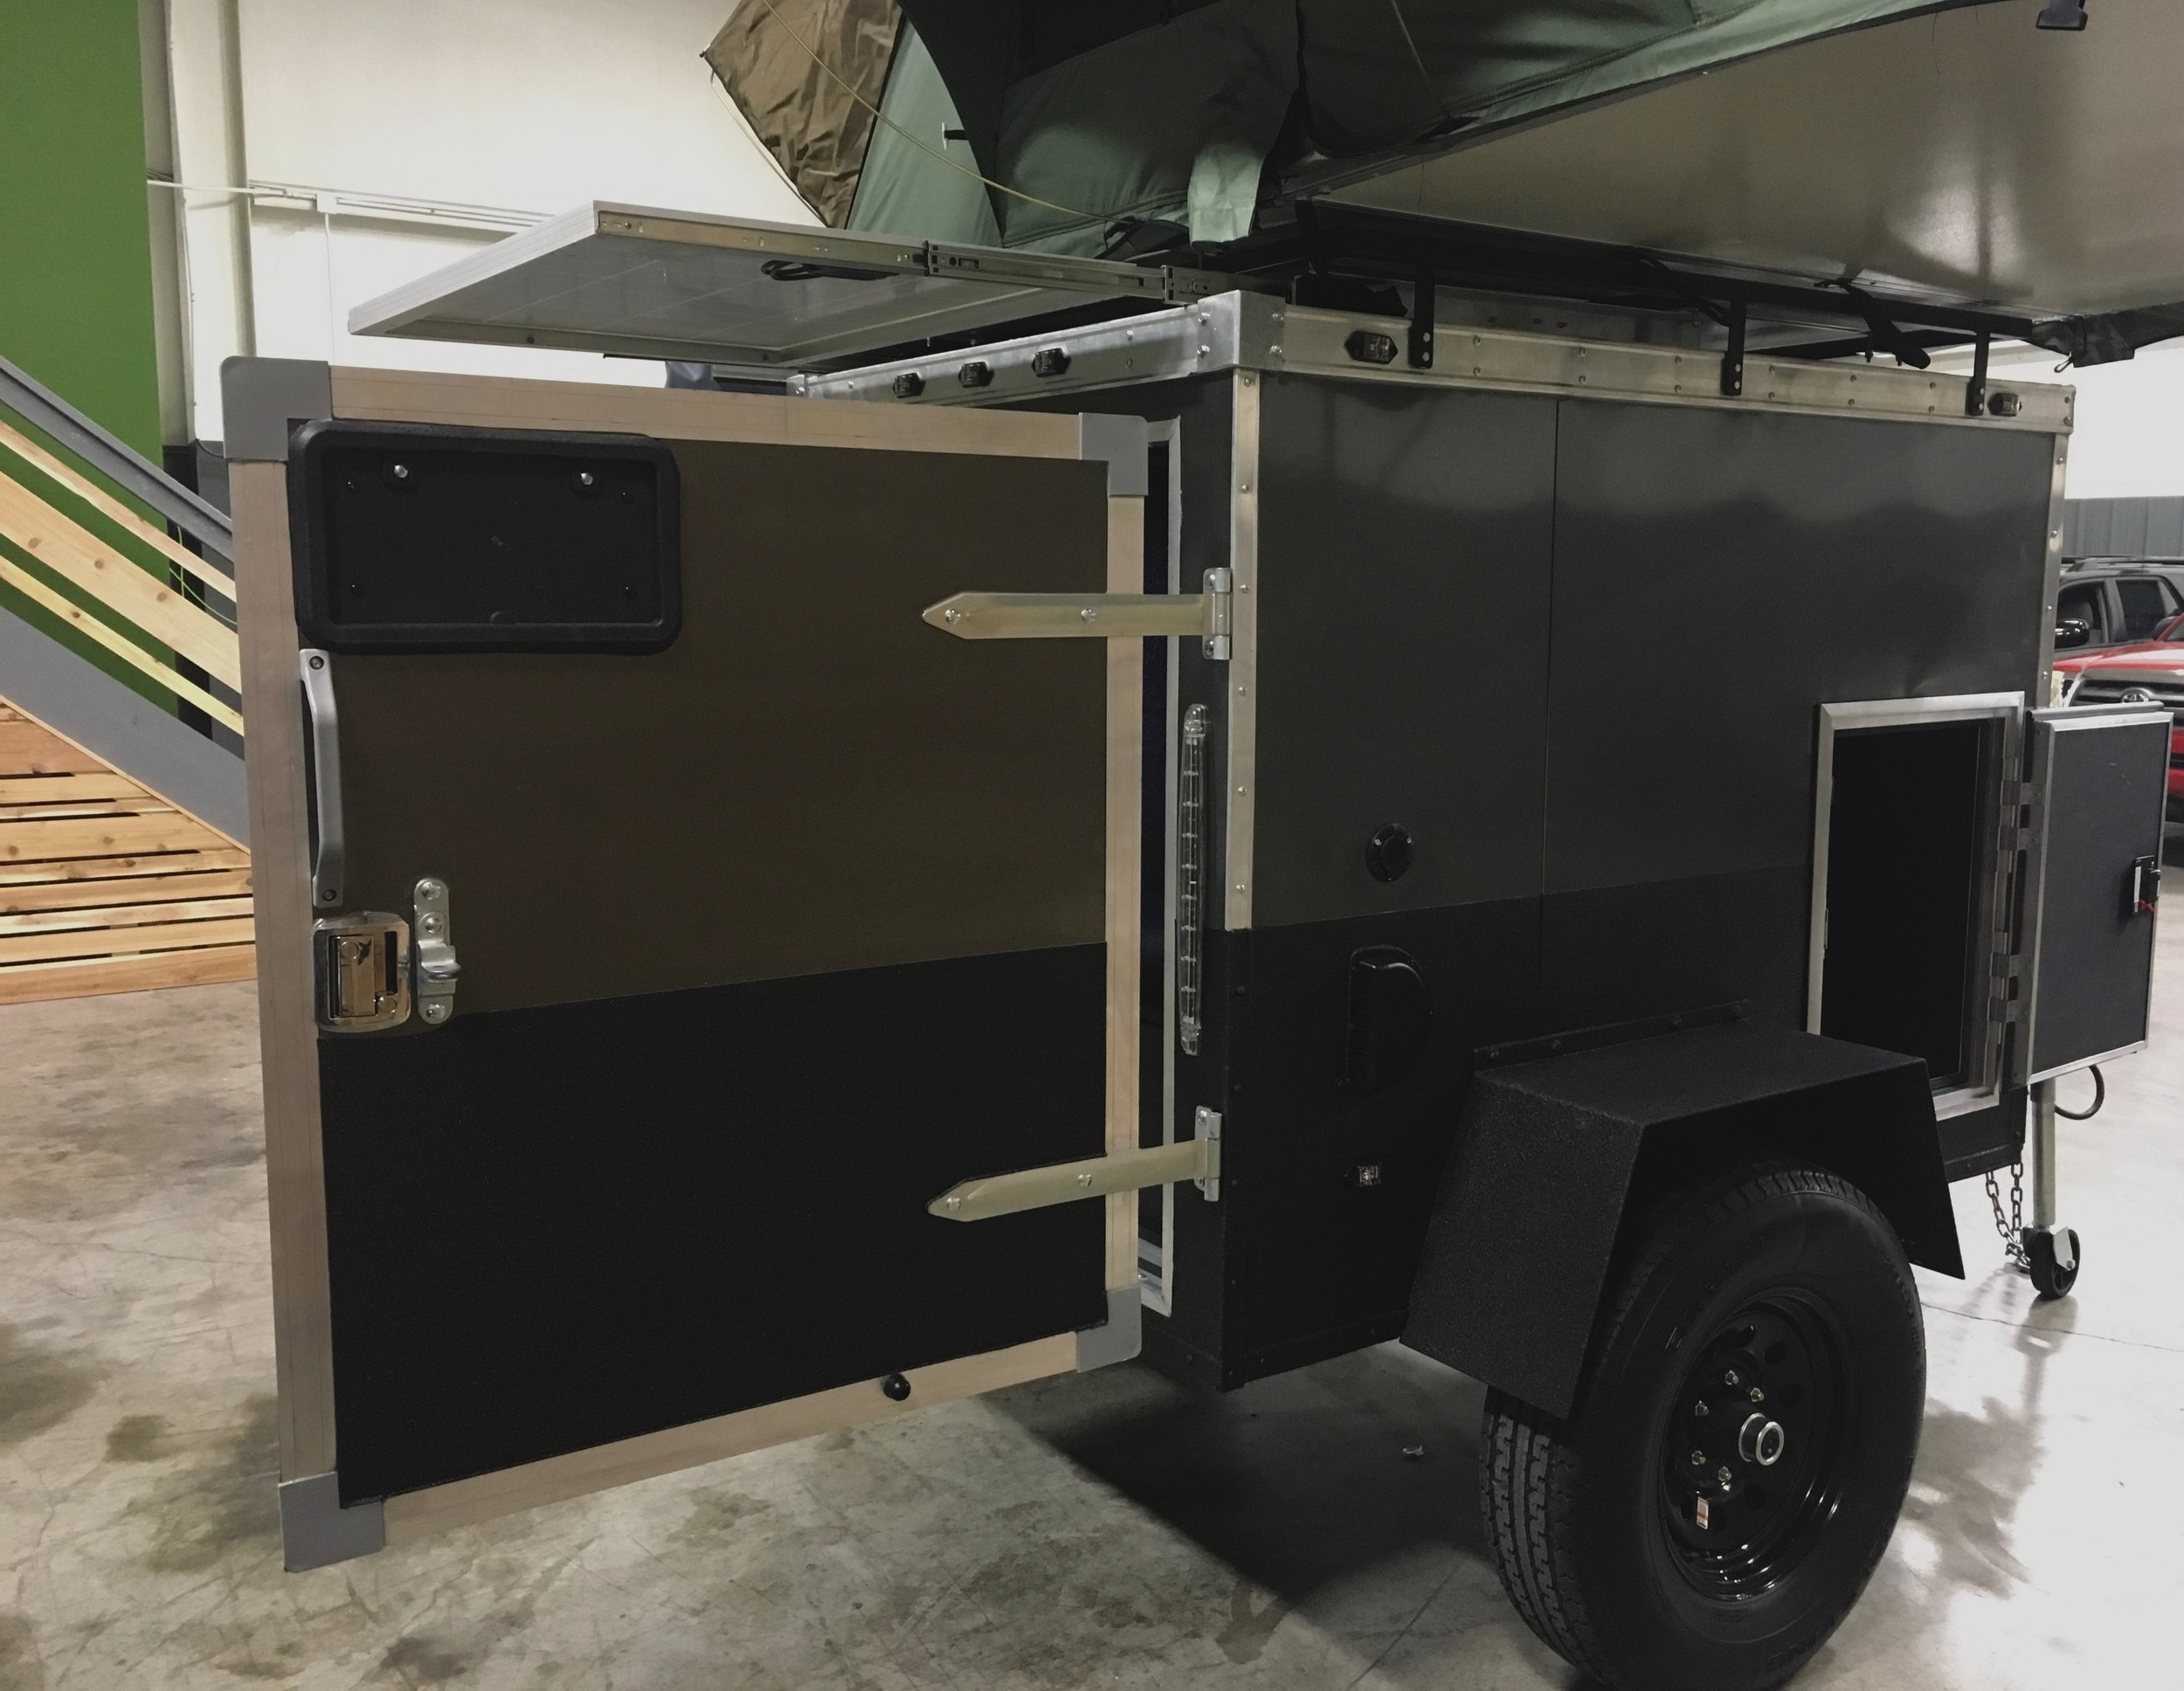 The full size rear cargo door gives you a large enough opening to fit all your large gear, inflatable kayaks, chainsaws, or whatever else you want to store in the main area.